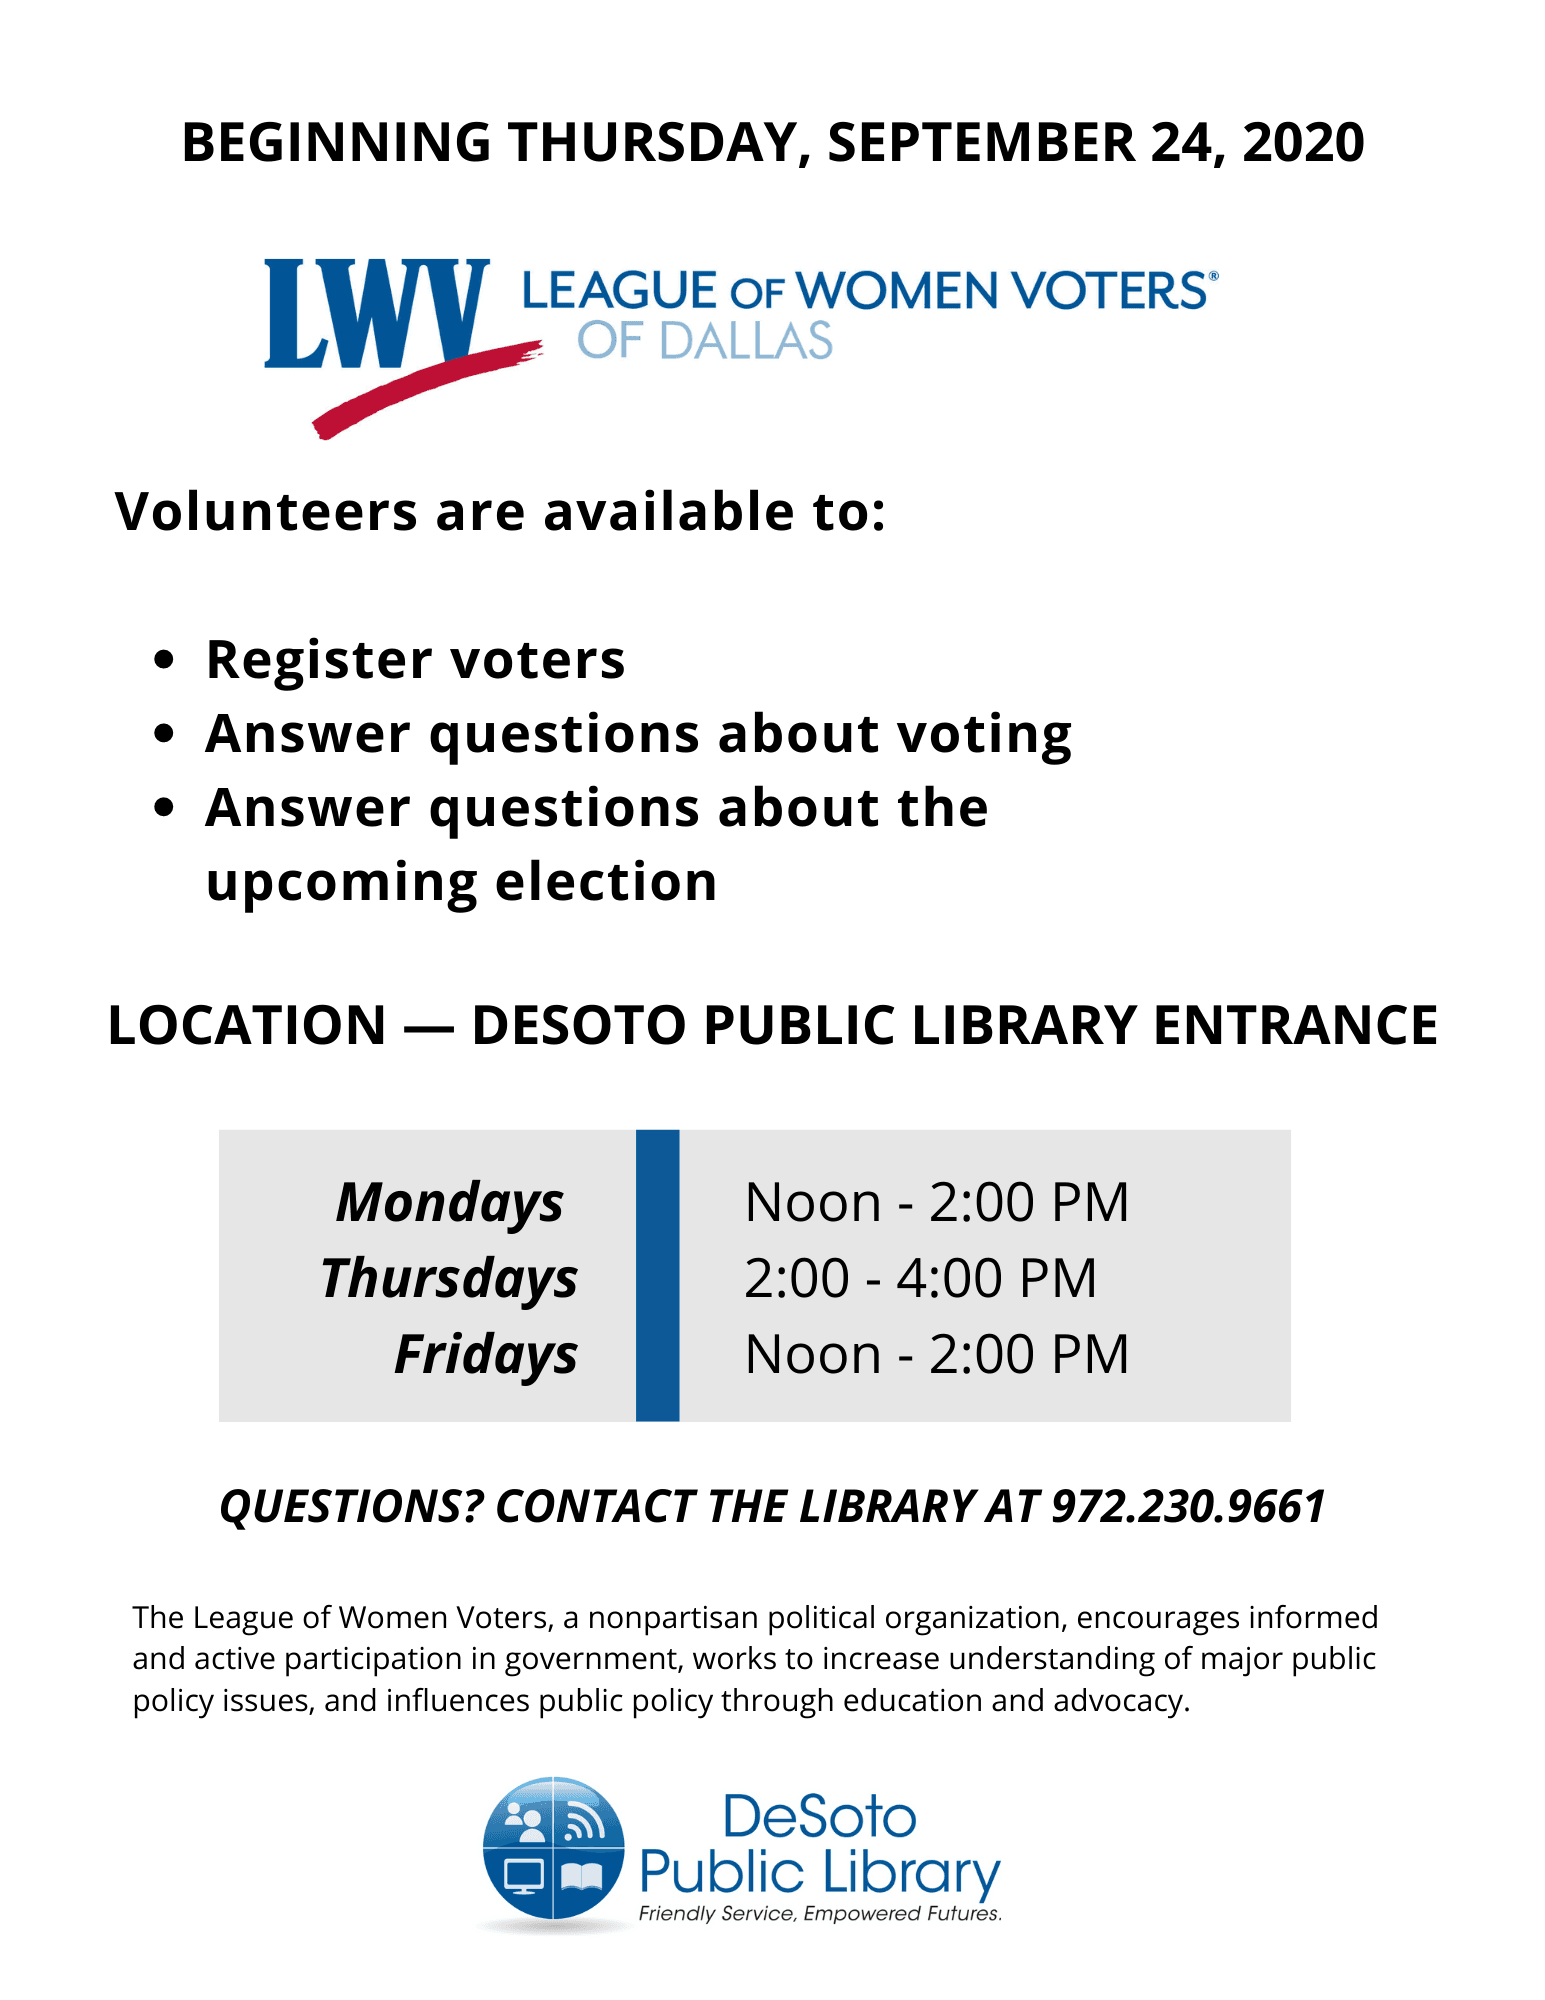 LWV Voter Assistance Fall 2020 flyer